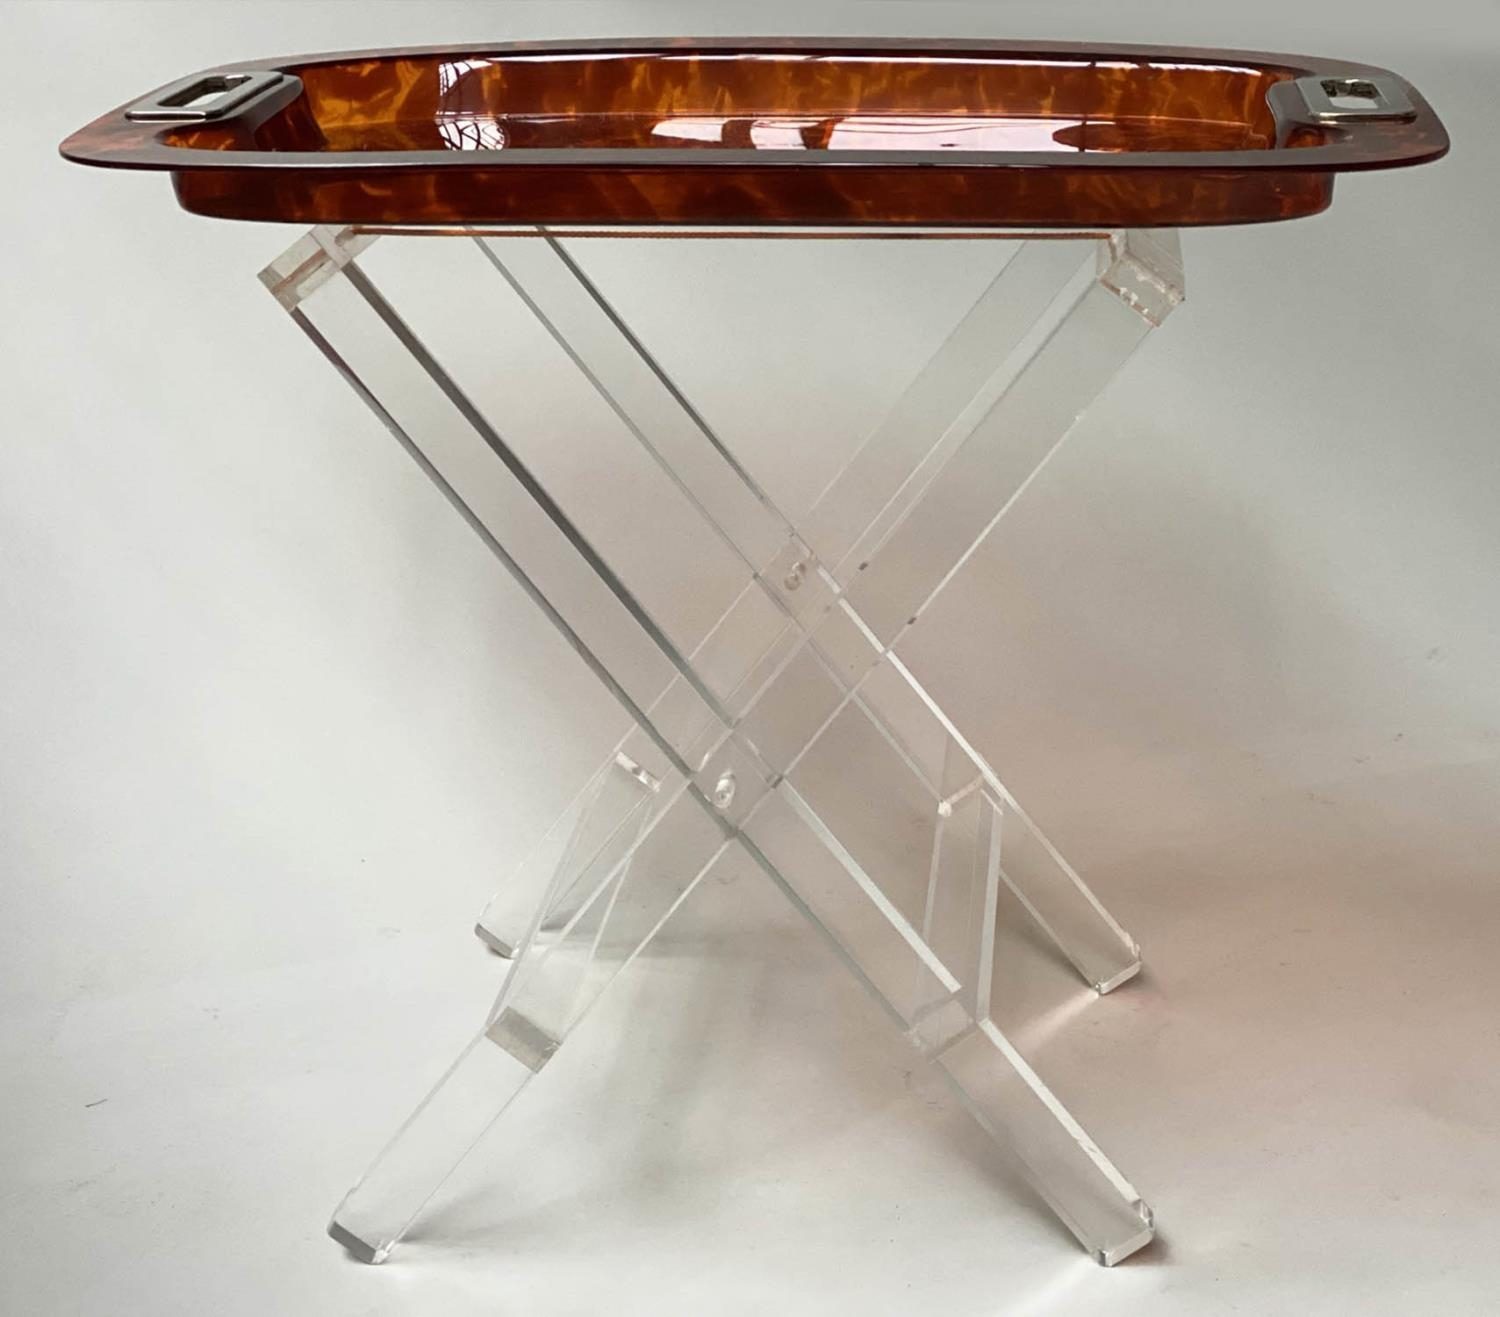 TRAY ON STAND, rectangular faux tortoiseshell with silvered metal handles on folding lucite stand, - Image 8 of 8